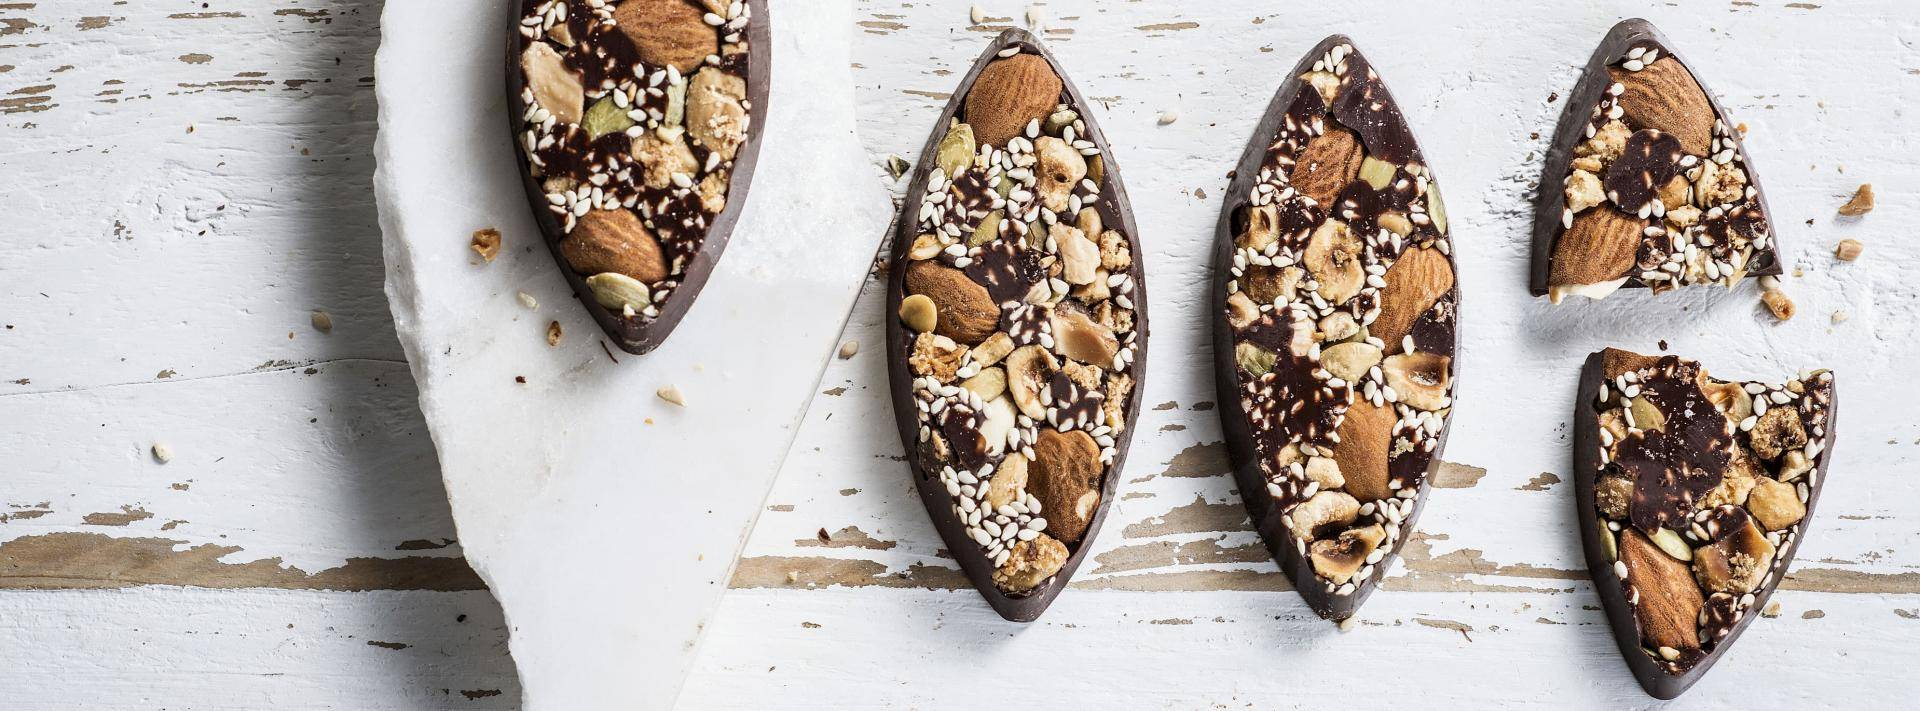 Organic Dark chocolate snack bars with organic nuts and seeds